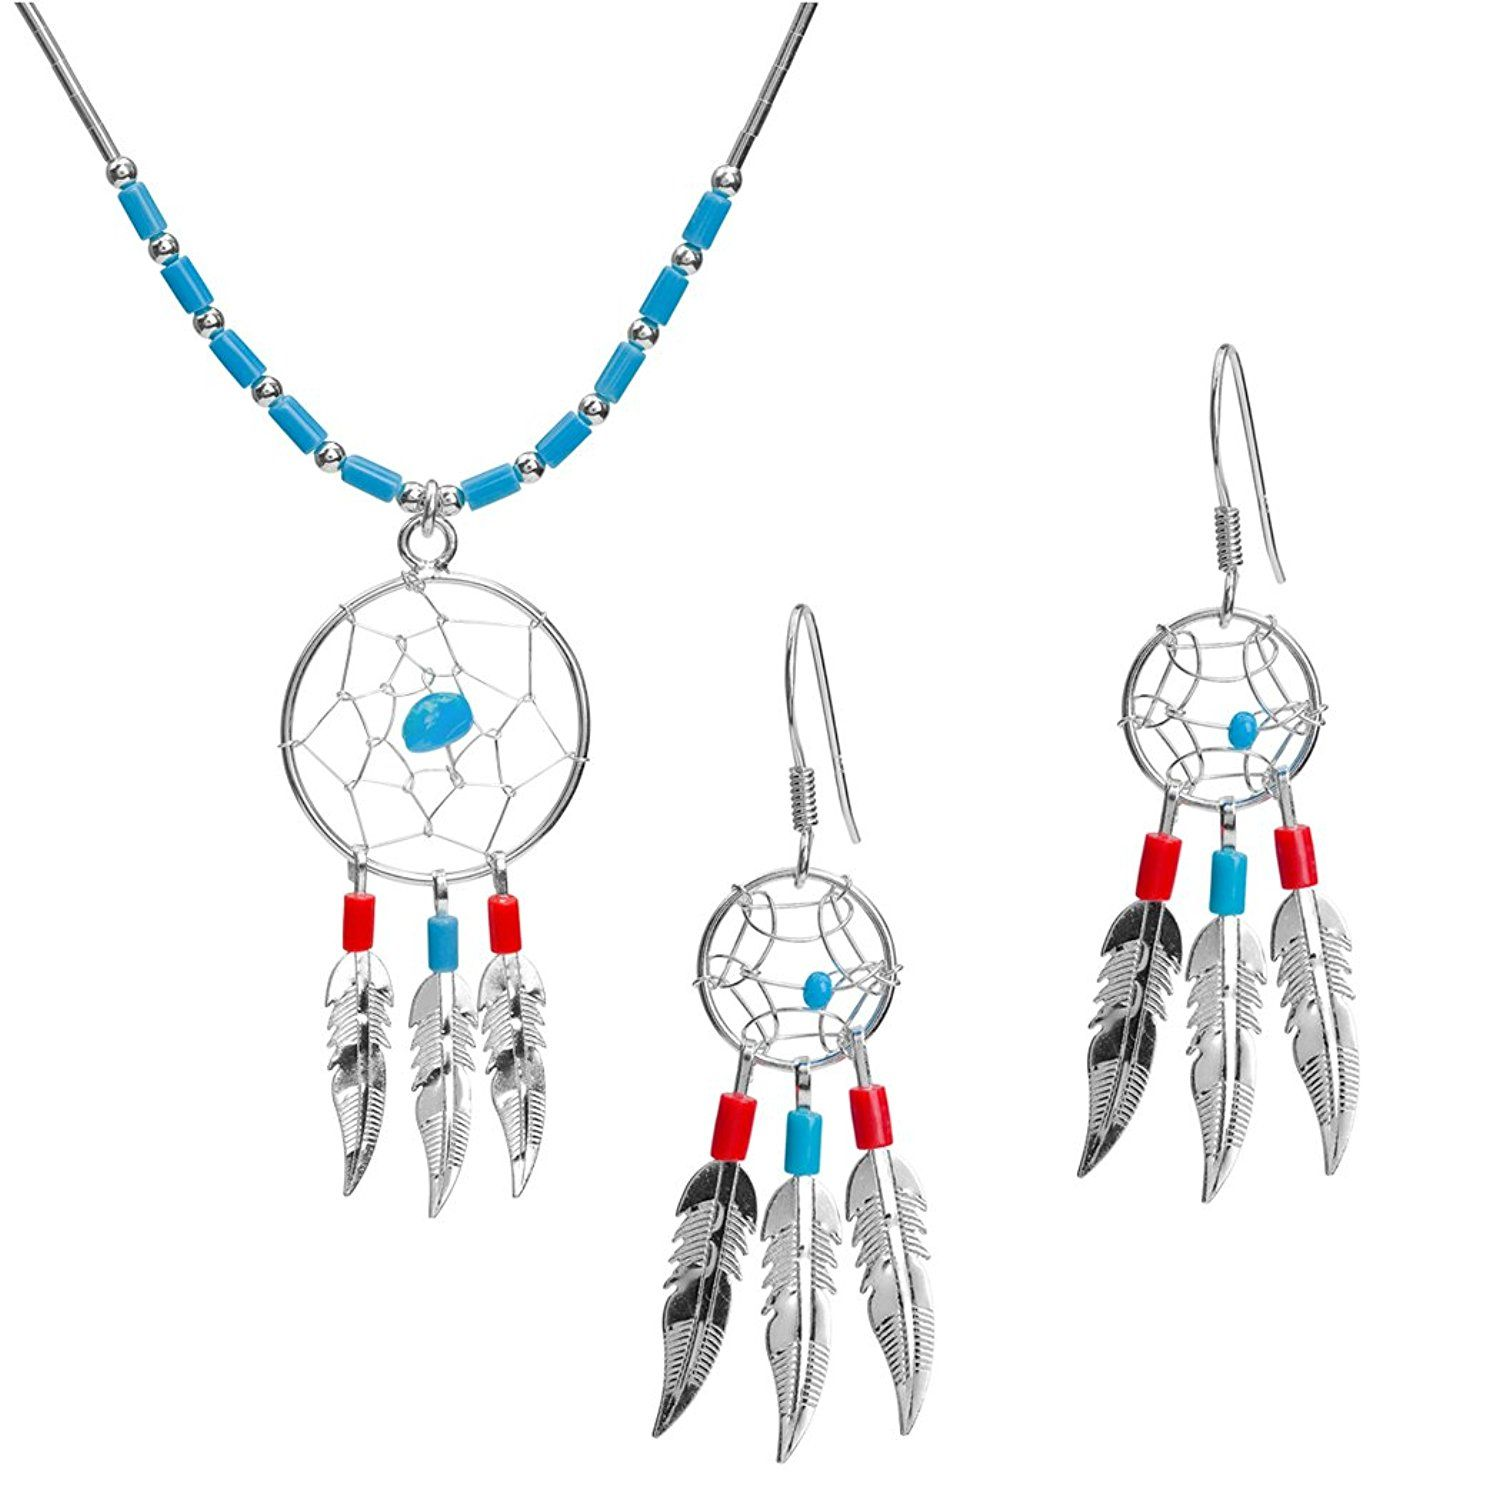 Turquoise sterling silver dreamcatcher set earrings pendant necklace